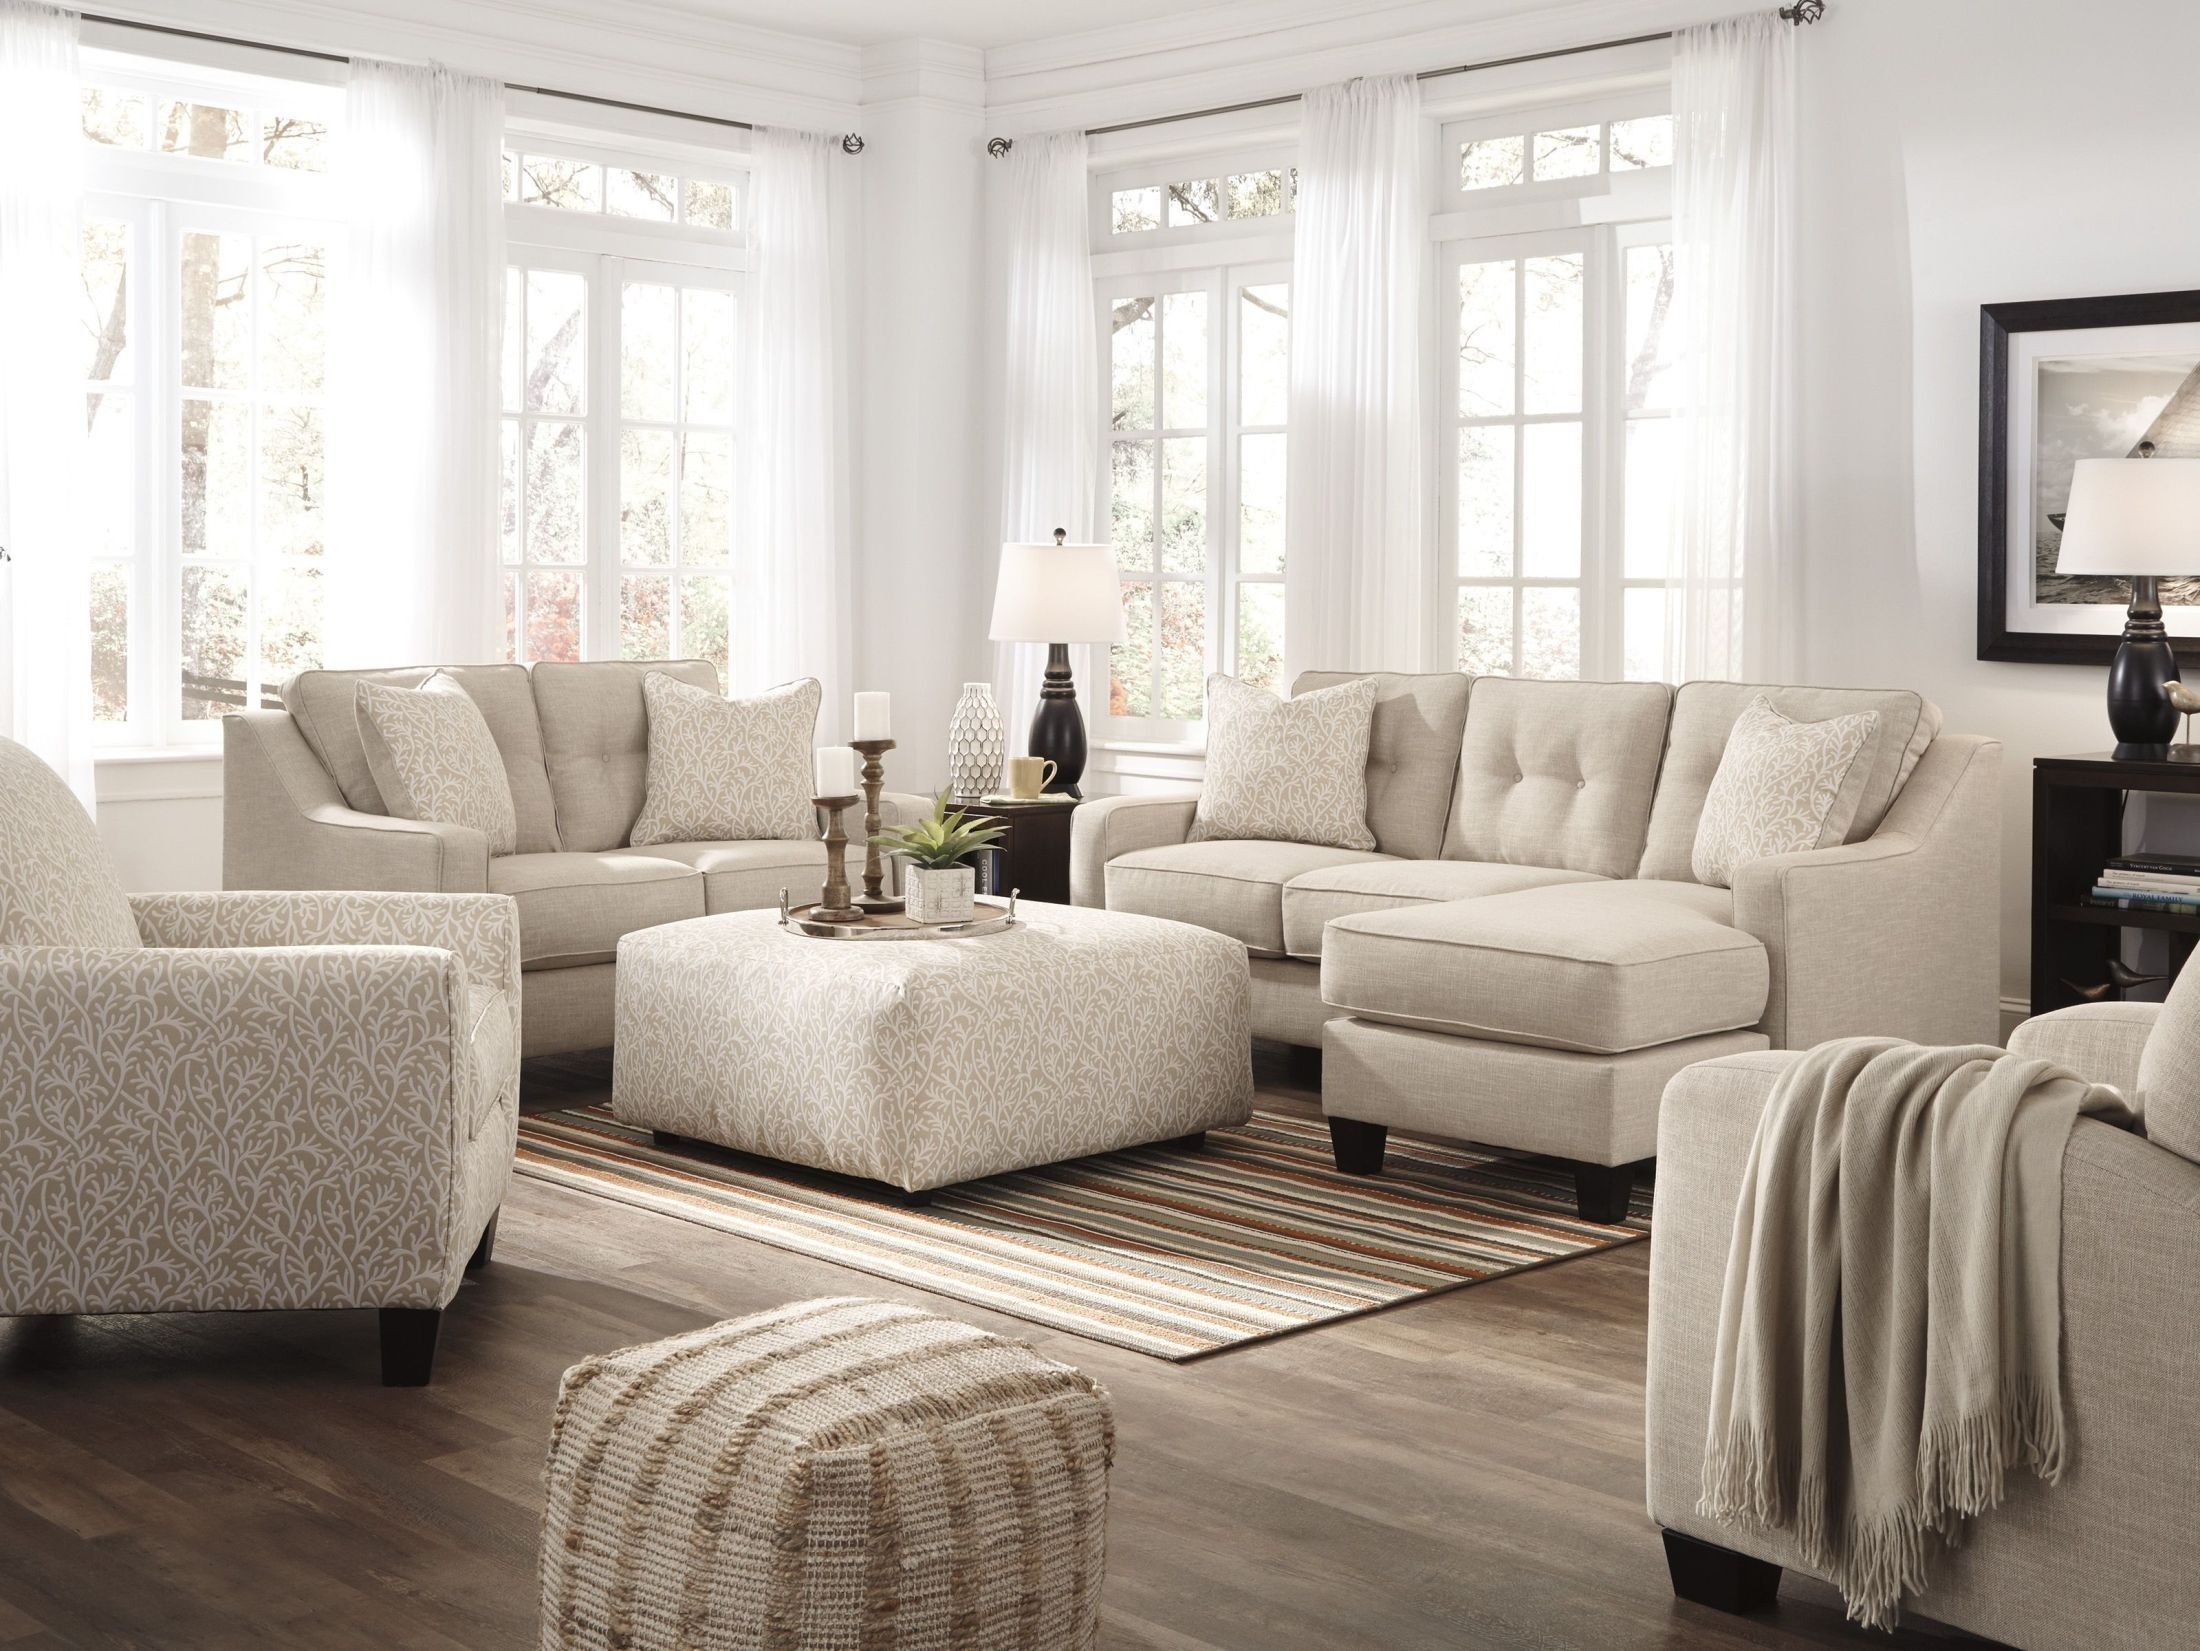 37++ Ashley furniture living room sets clearance ideas